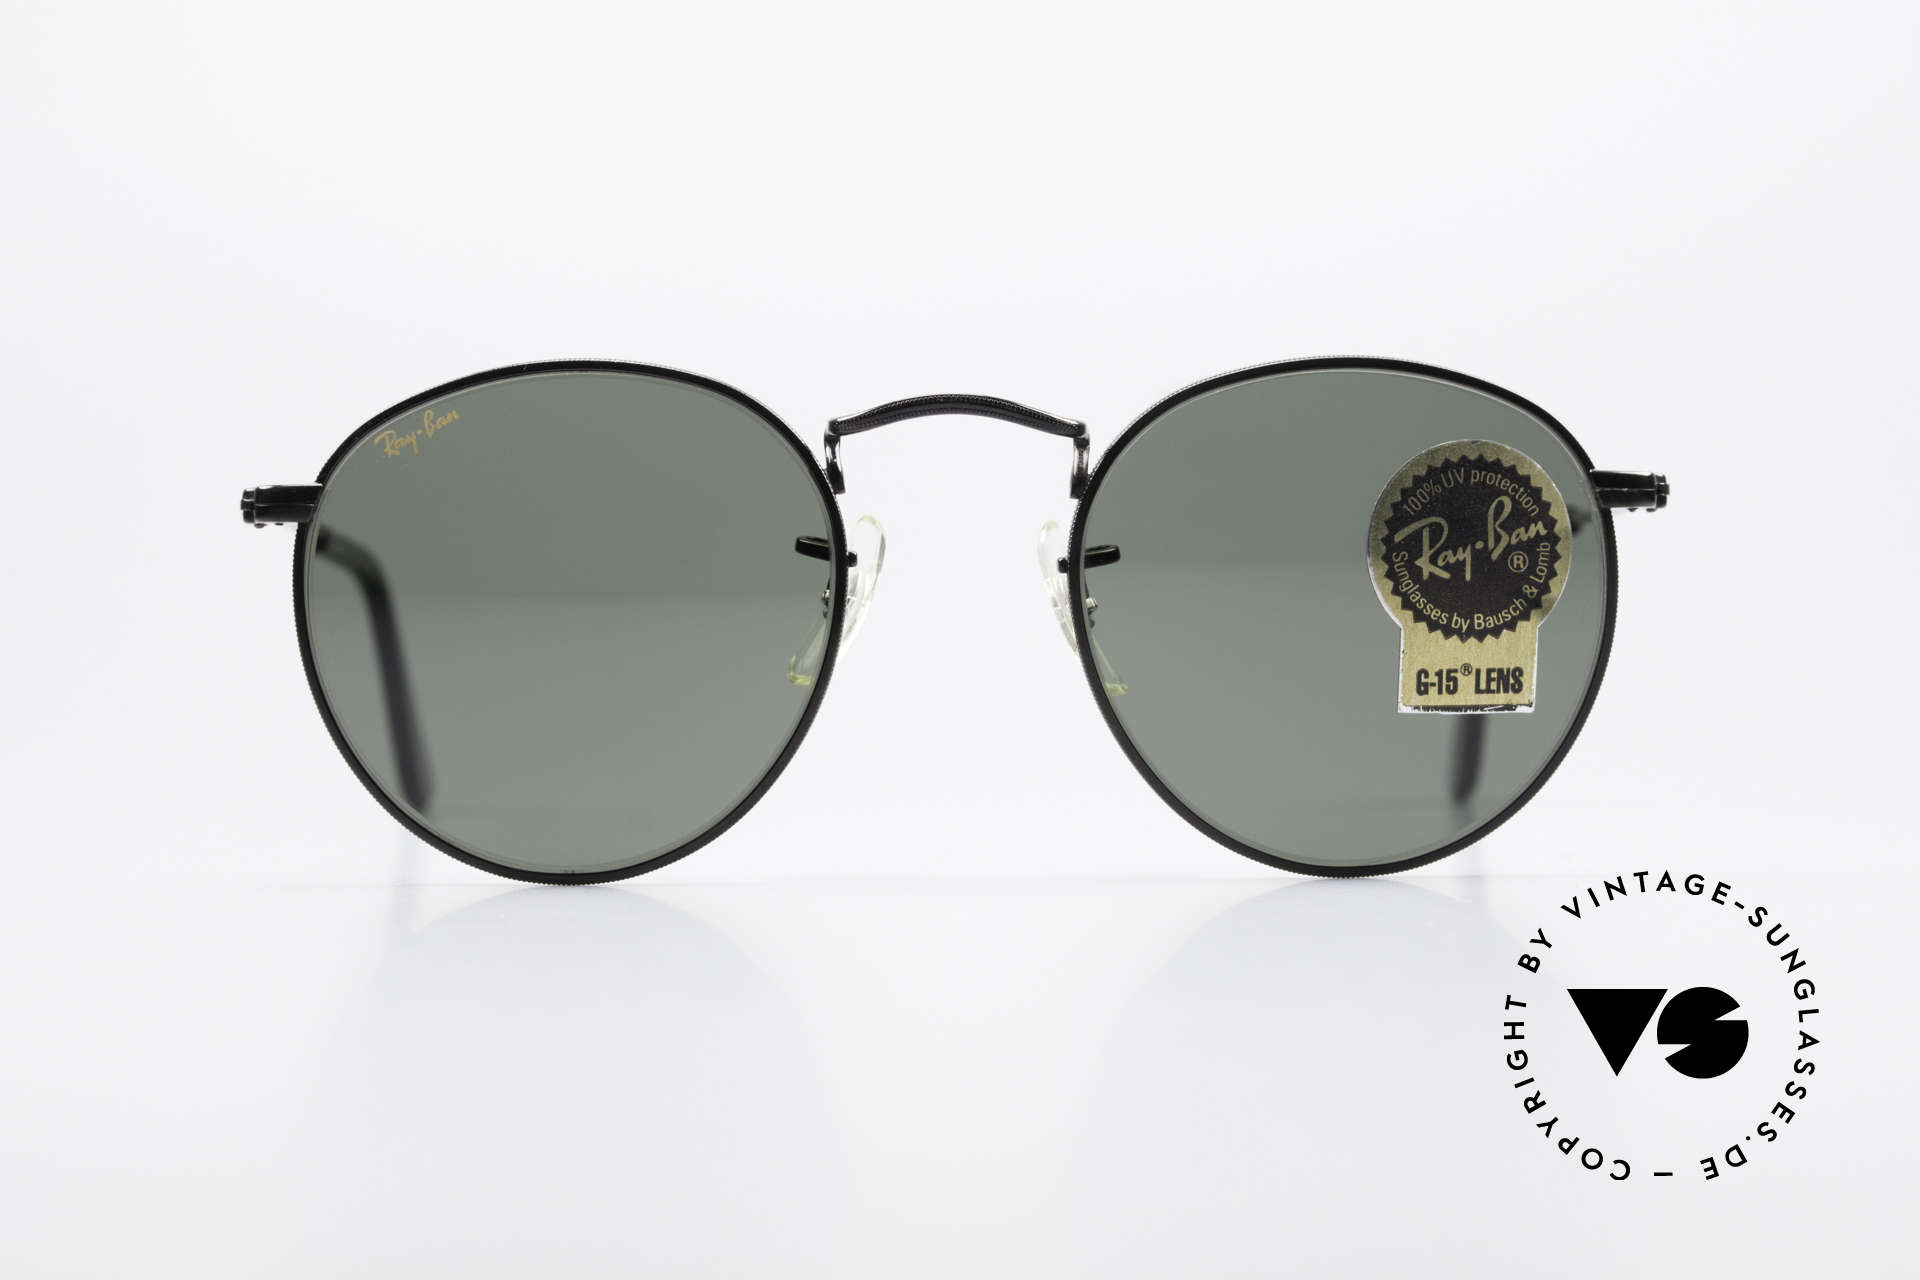 Ray Ban Round Metal 47 Small Round USA Sunglasses, a timeless classic in high-end quality; made in USA, Made for Men and Women